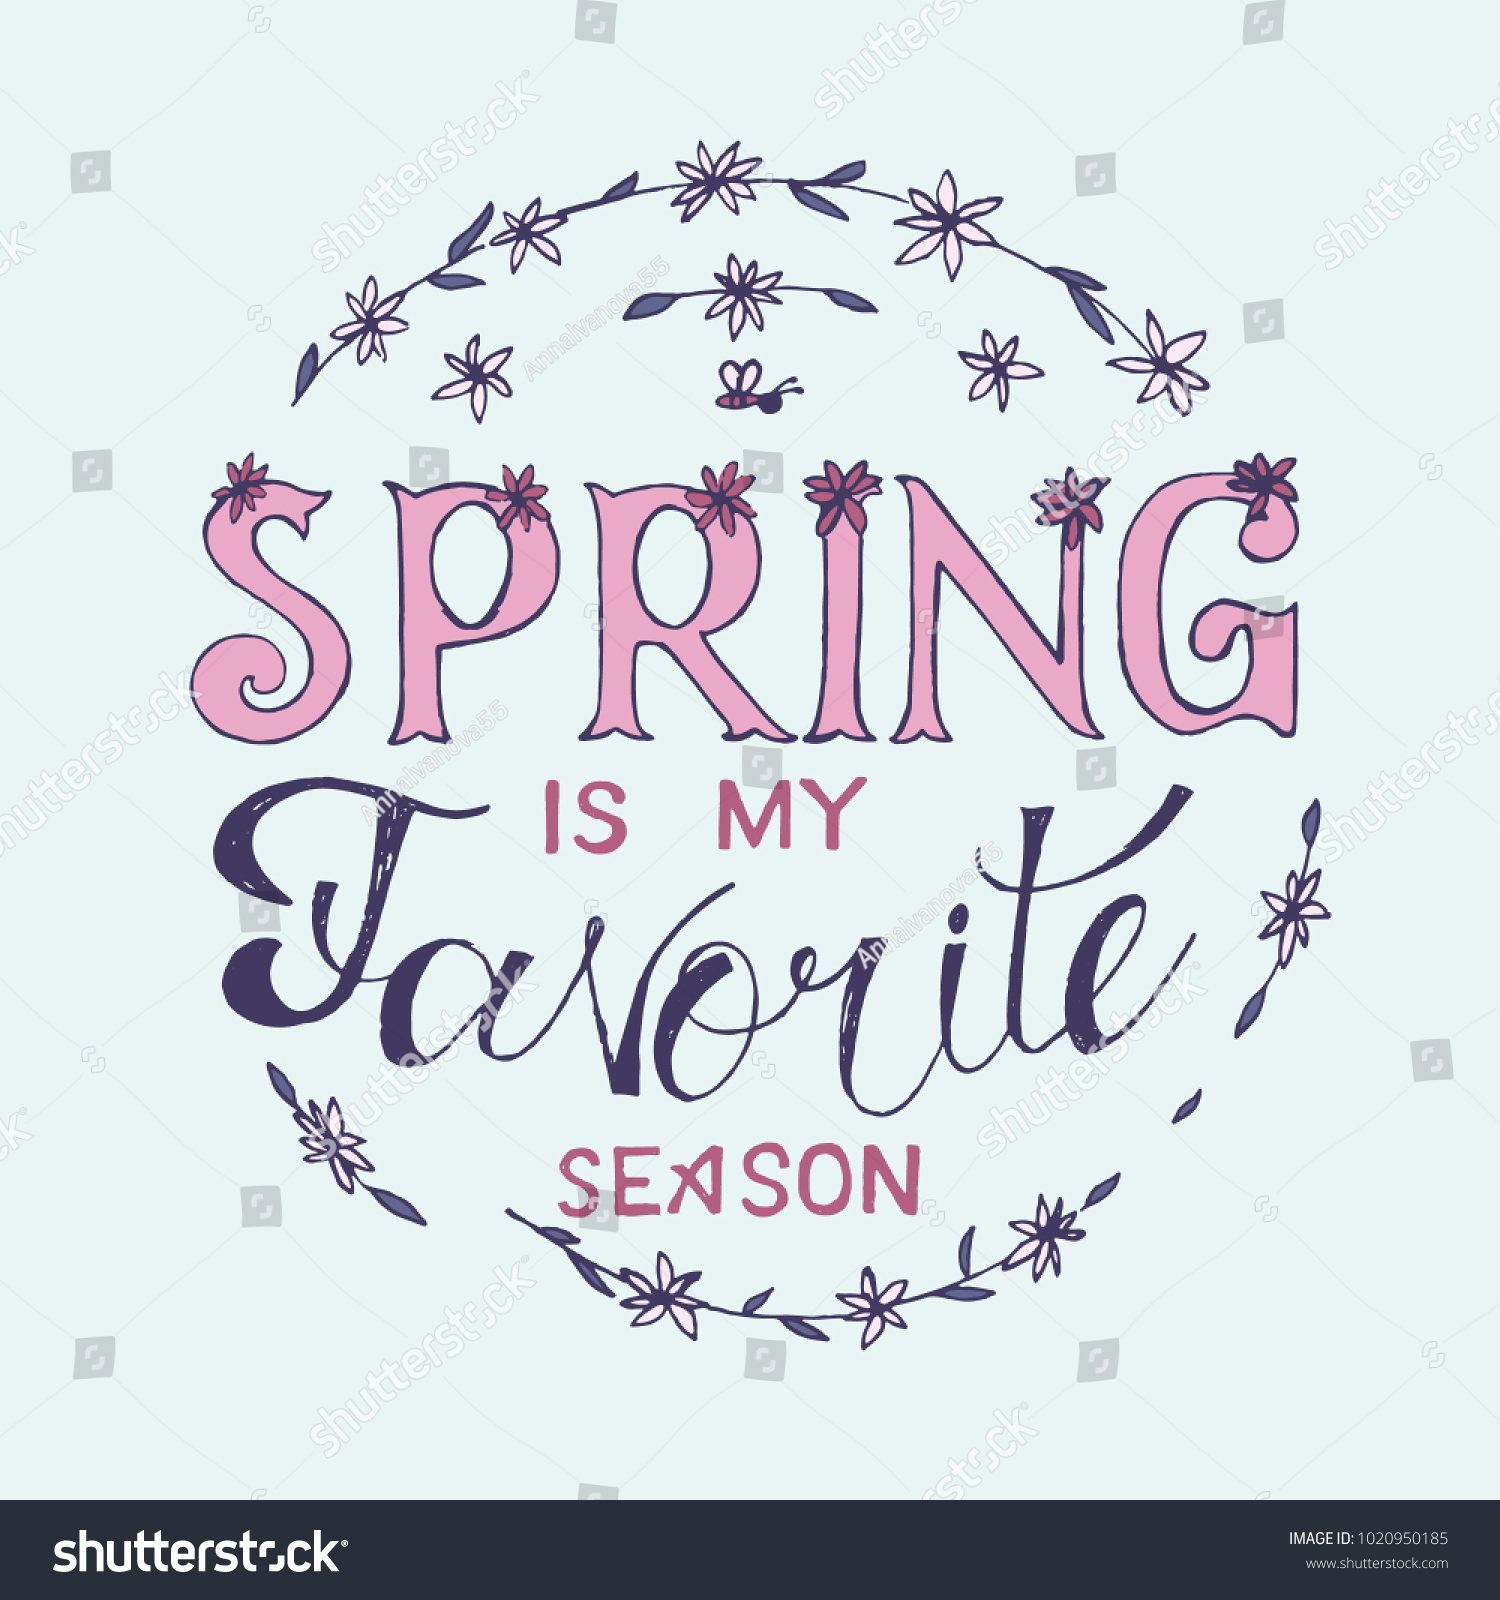 my favorite season is spring